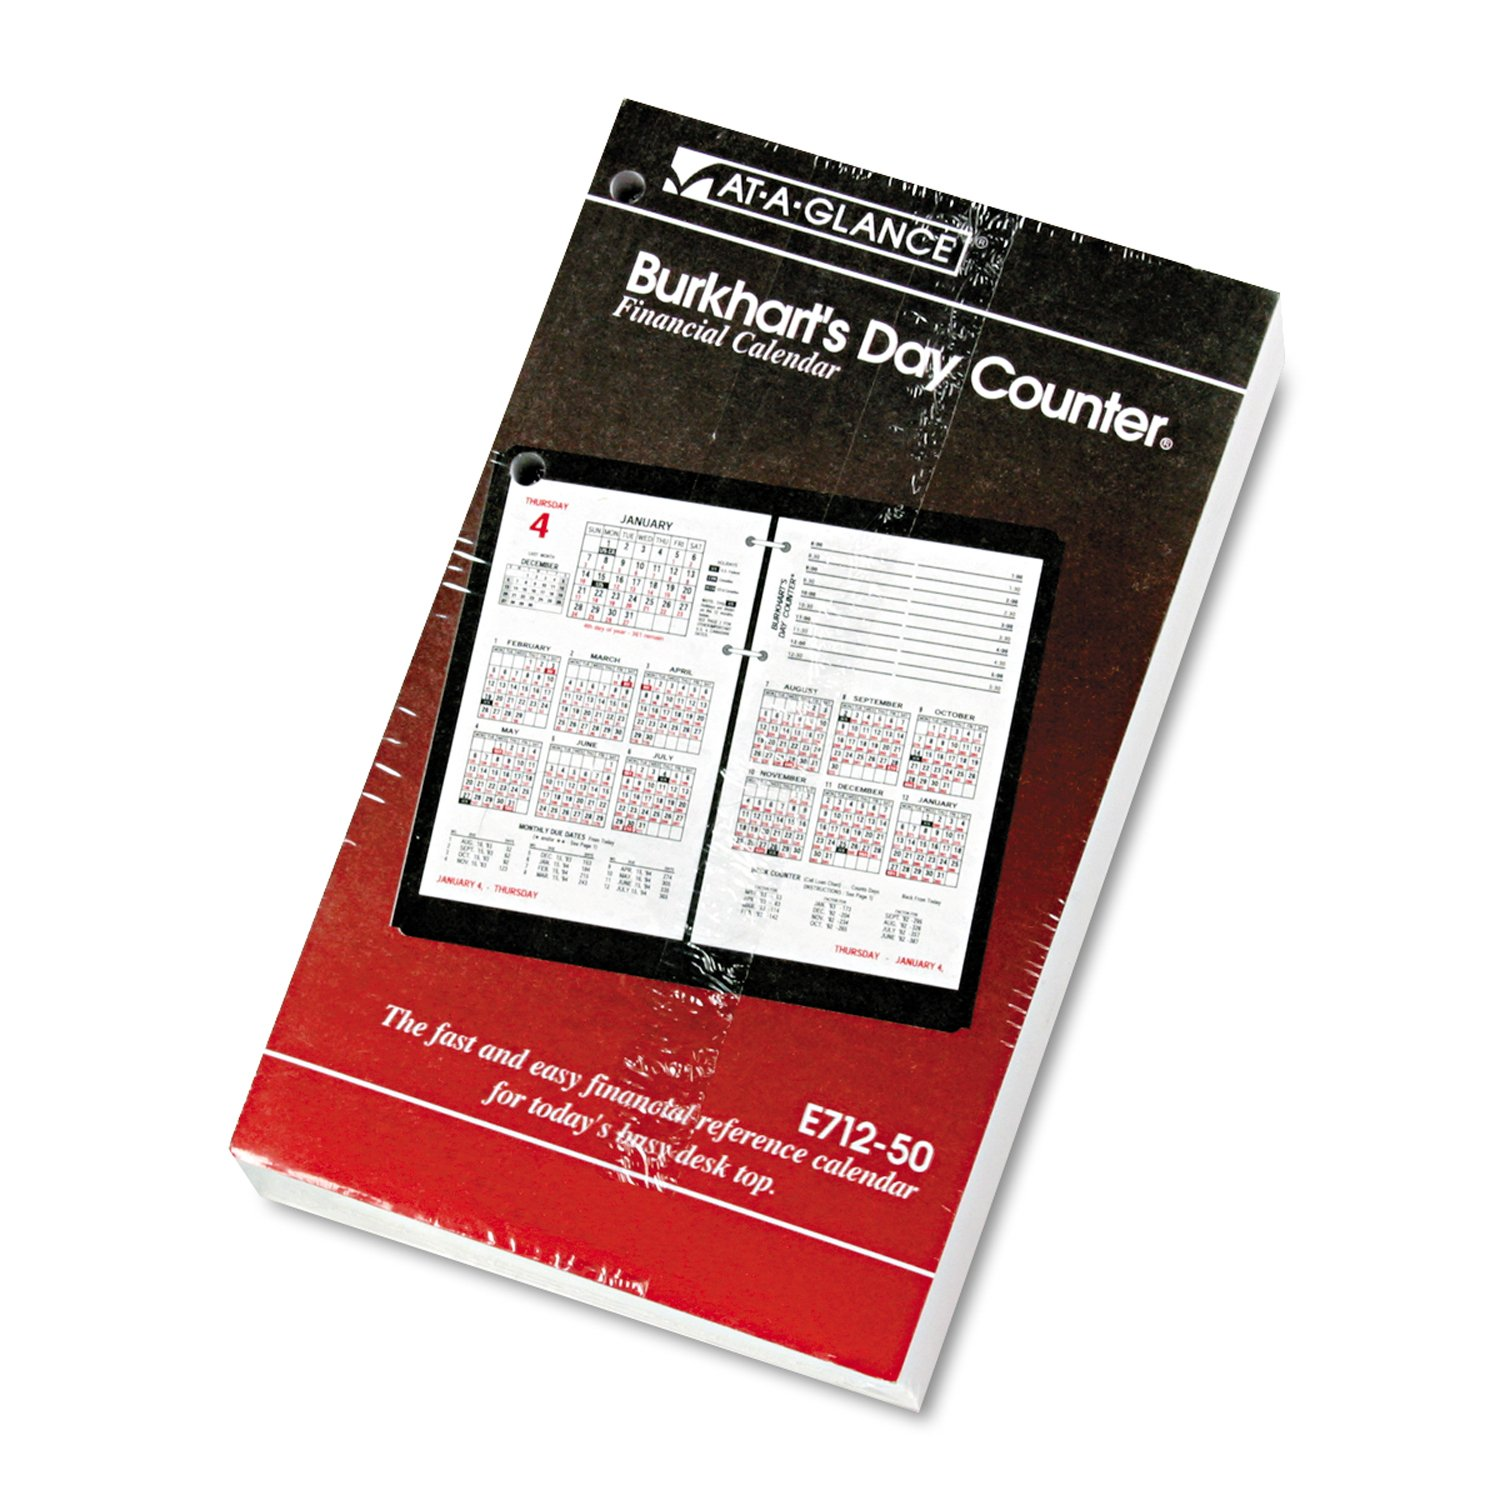 Amazon.com : AAGE71250 - At-a-Glance Burkhart's Day Counter ...